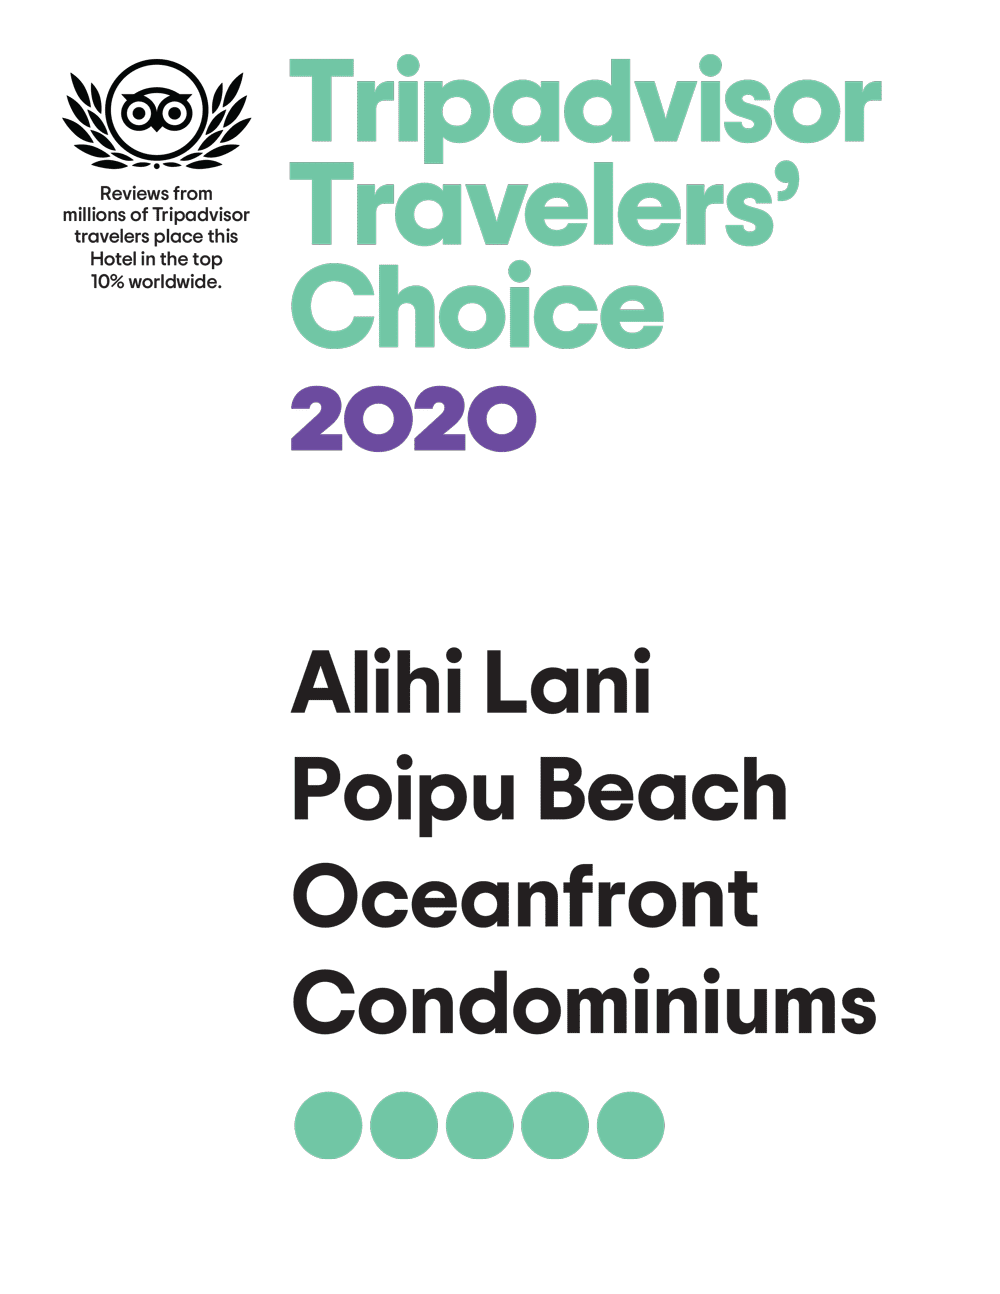 2020 Tripadviser Travelers' Choice Award to Alihi Lani Poipu Beach Oceanfront Condominiums placing it in top 10% worldwide